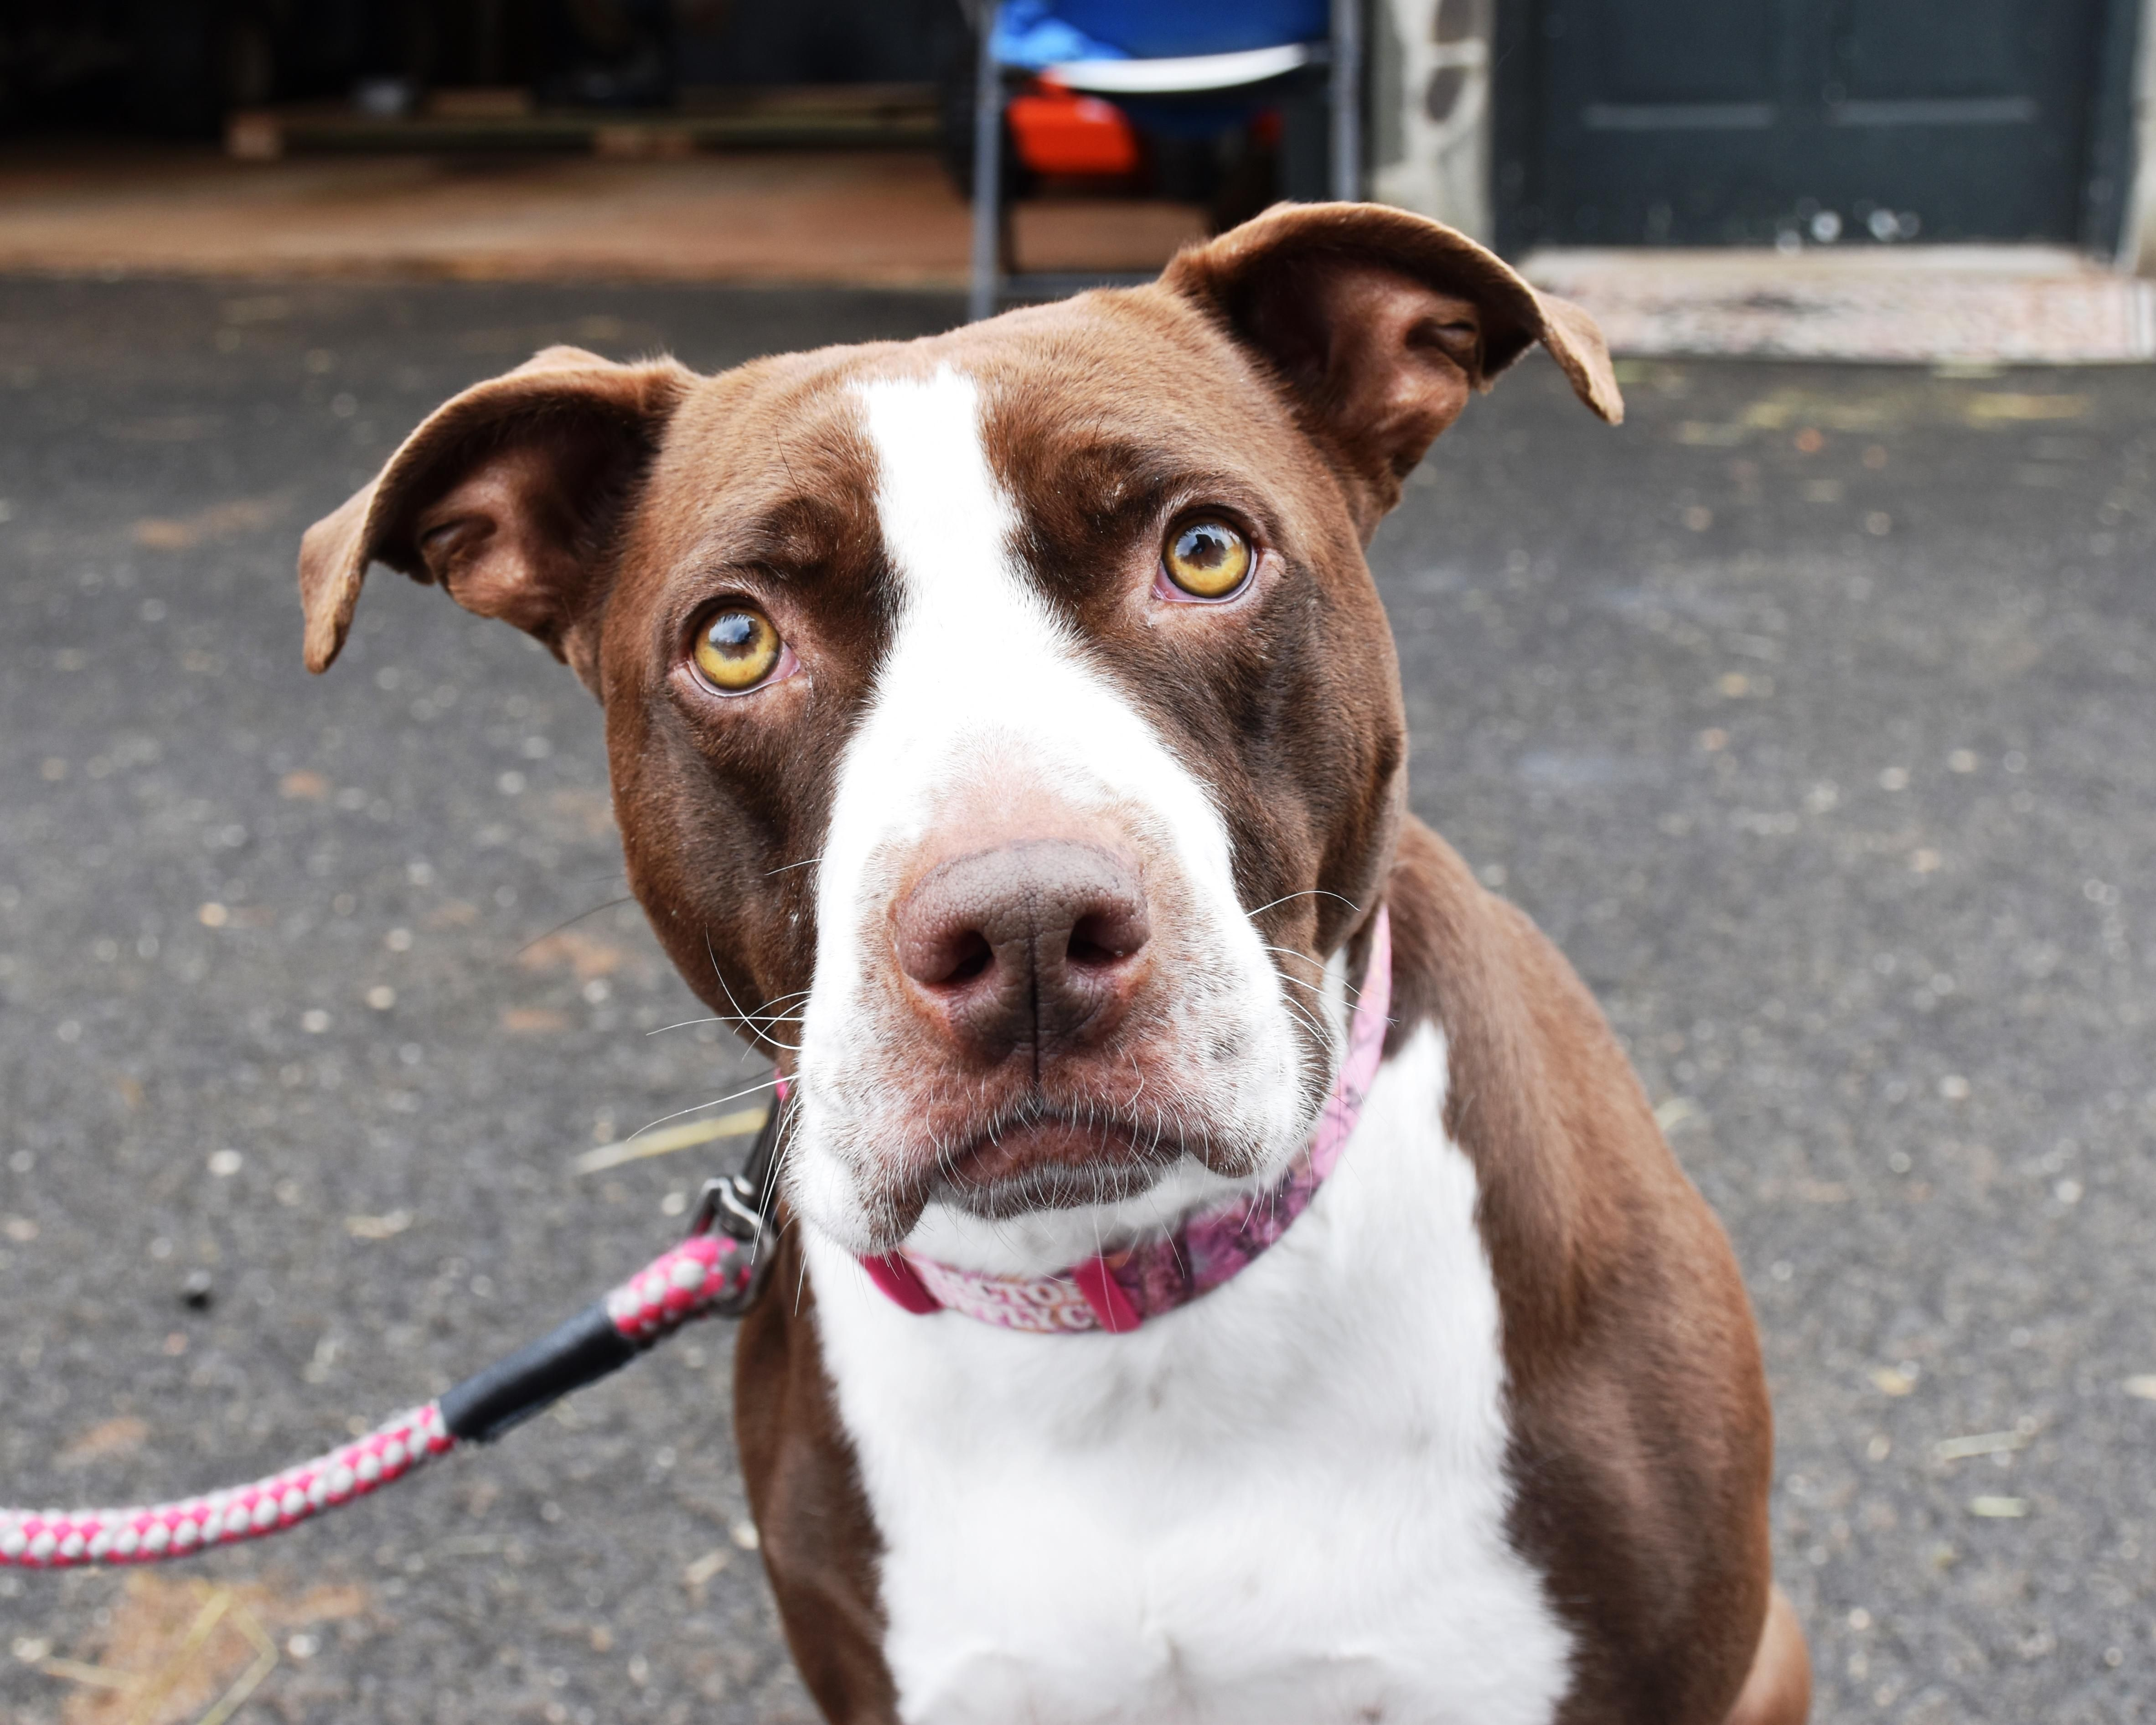 Adopt Mae on Animal rescue, Brittany spaniel, Pup